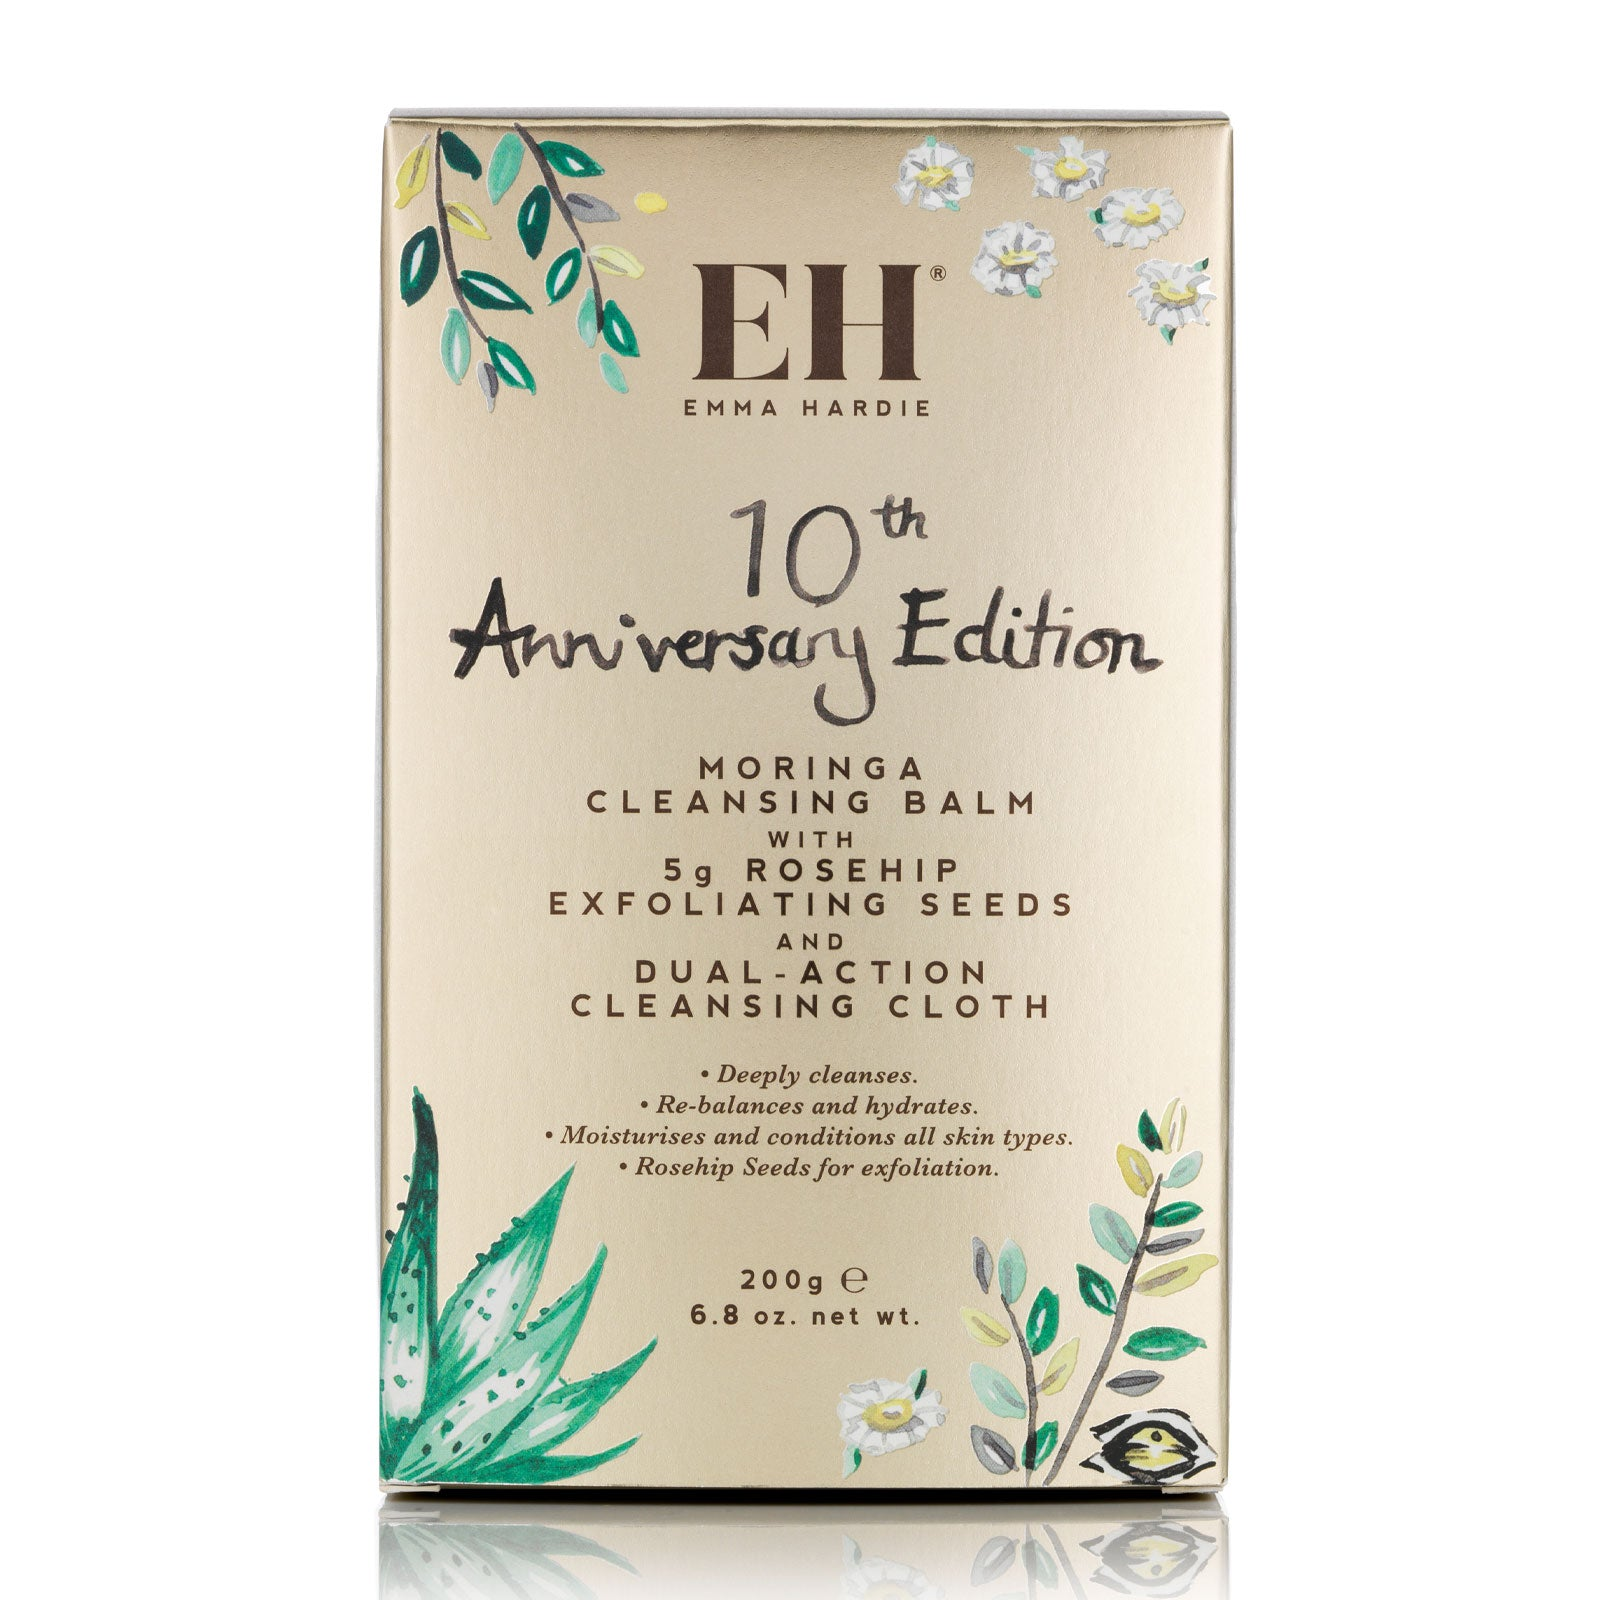 Emma Hardie Moringa Cleansing Balm 200g - 10th Anniversary Edition